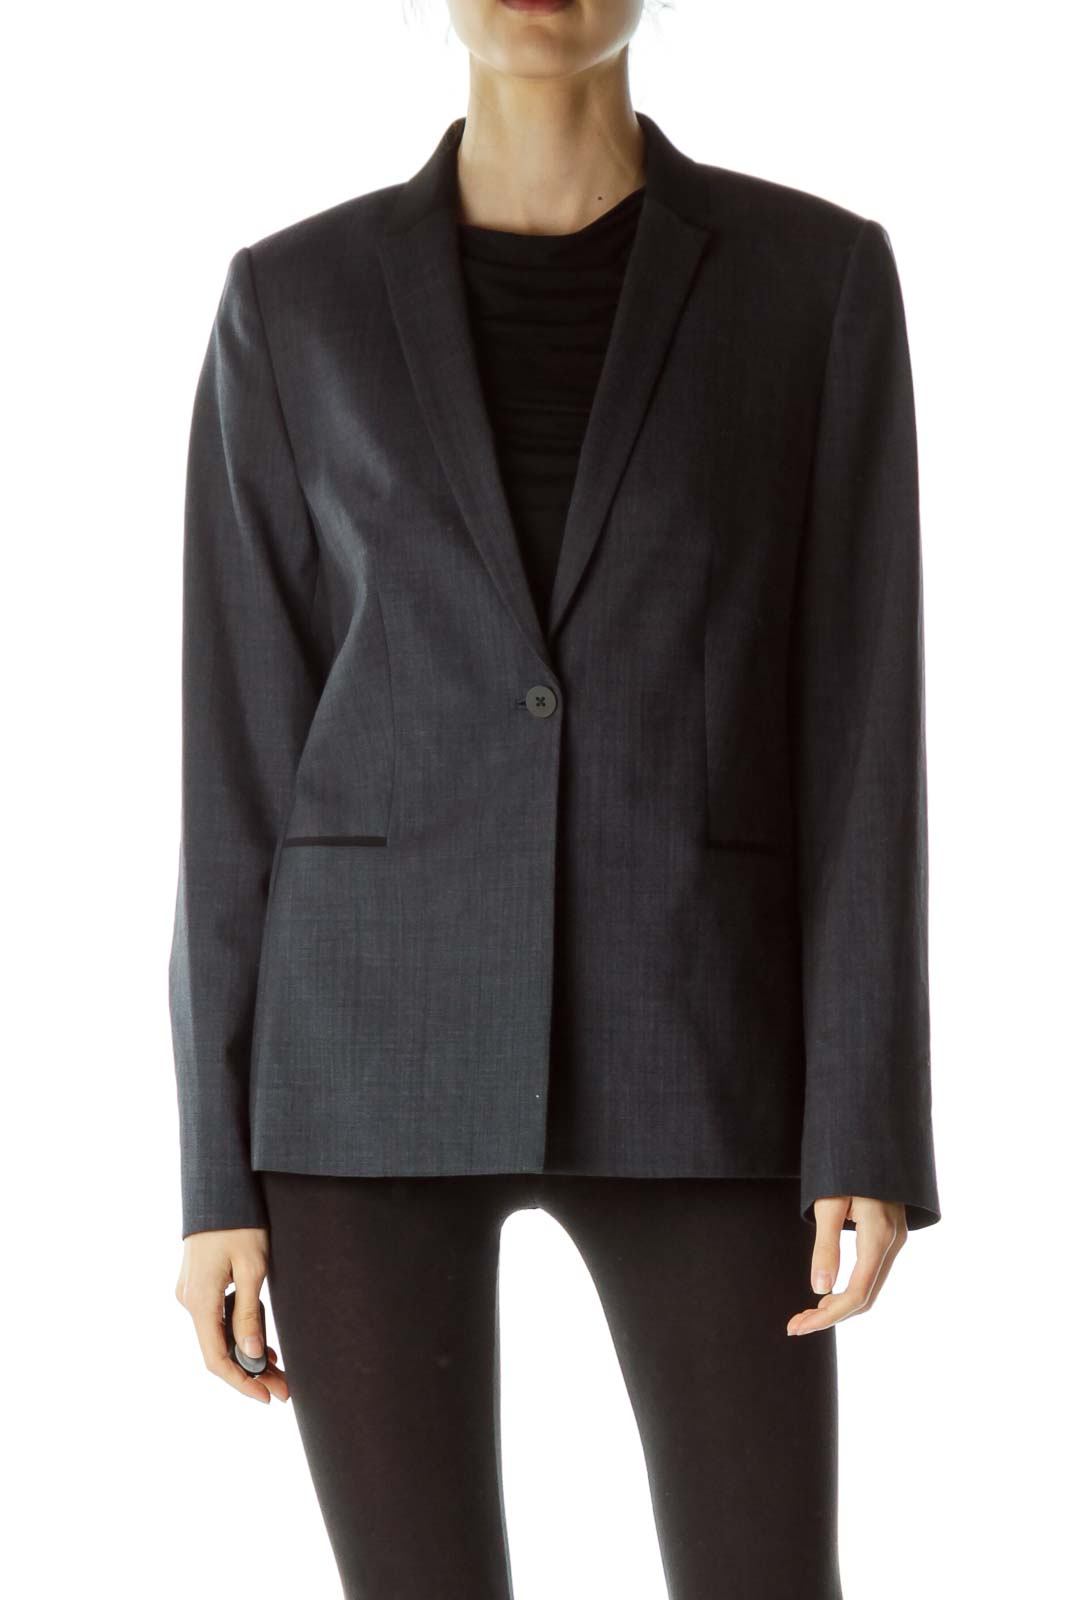 Blue Black Accent Neck Designer Blazer